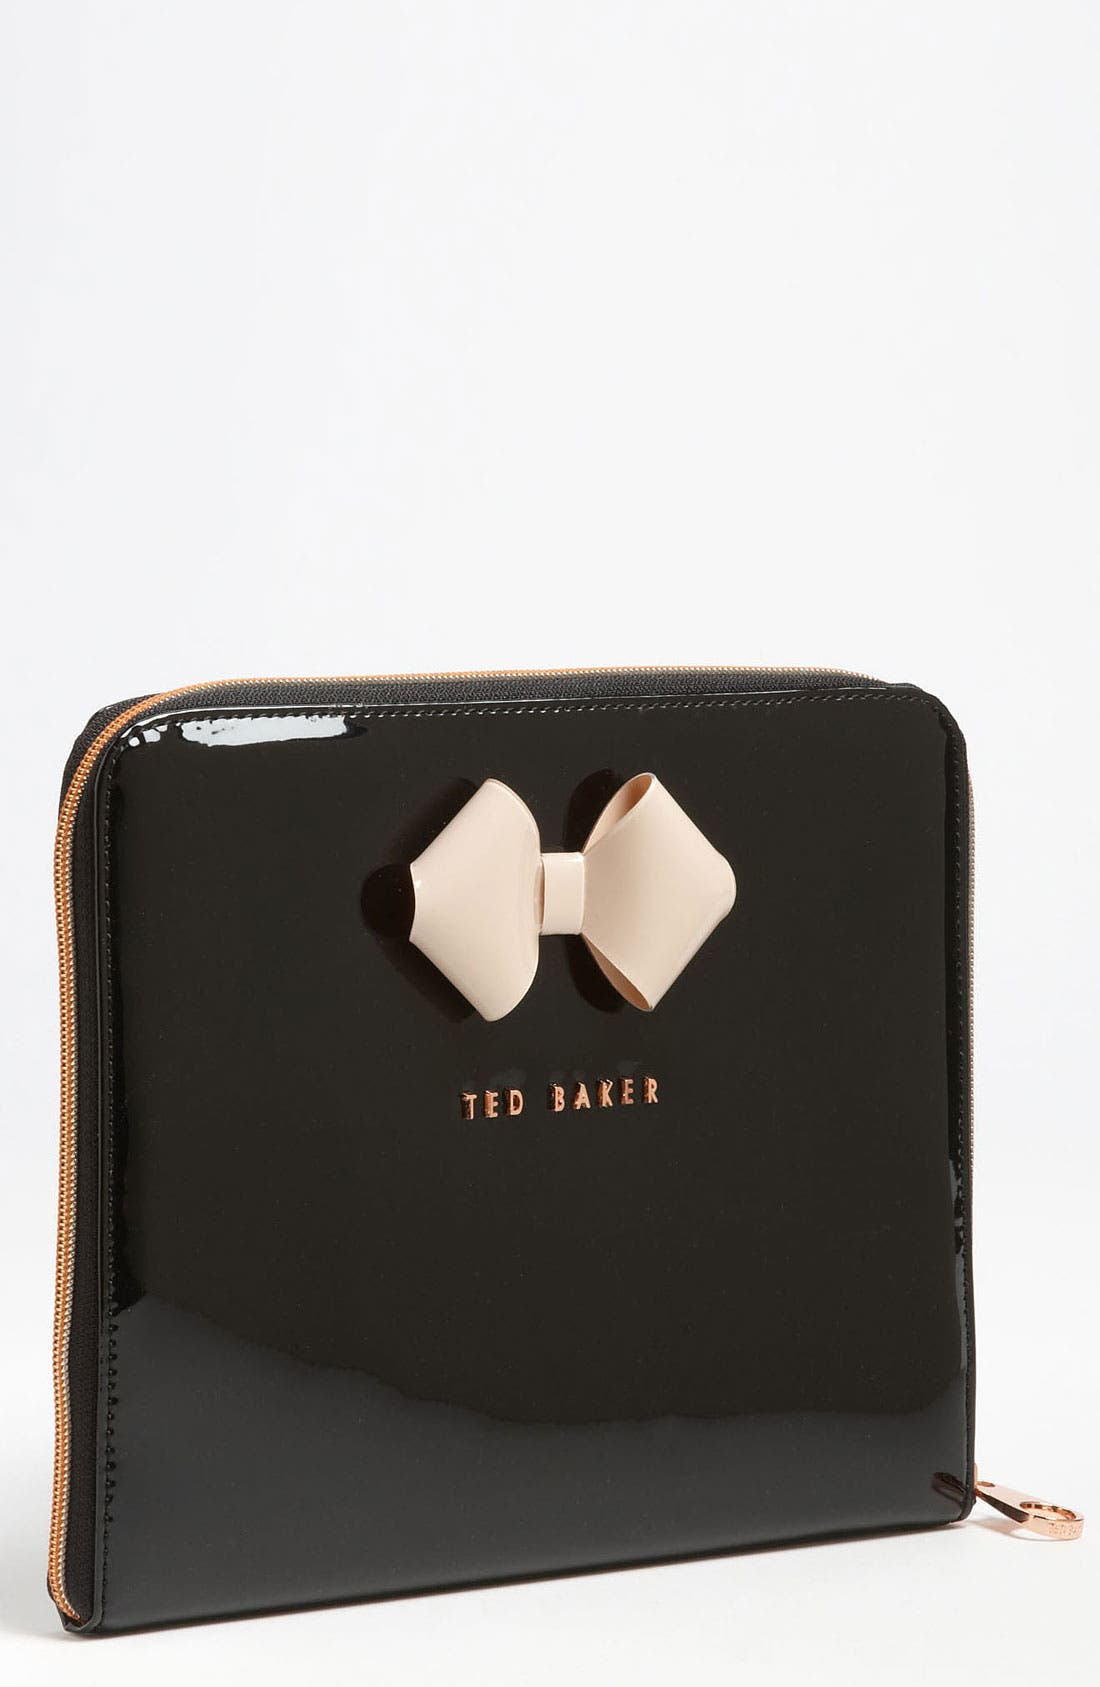 TED BAKER LONDON 'Bow' iPad Sleeve, Main, color, 009